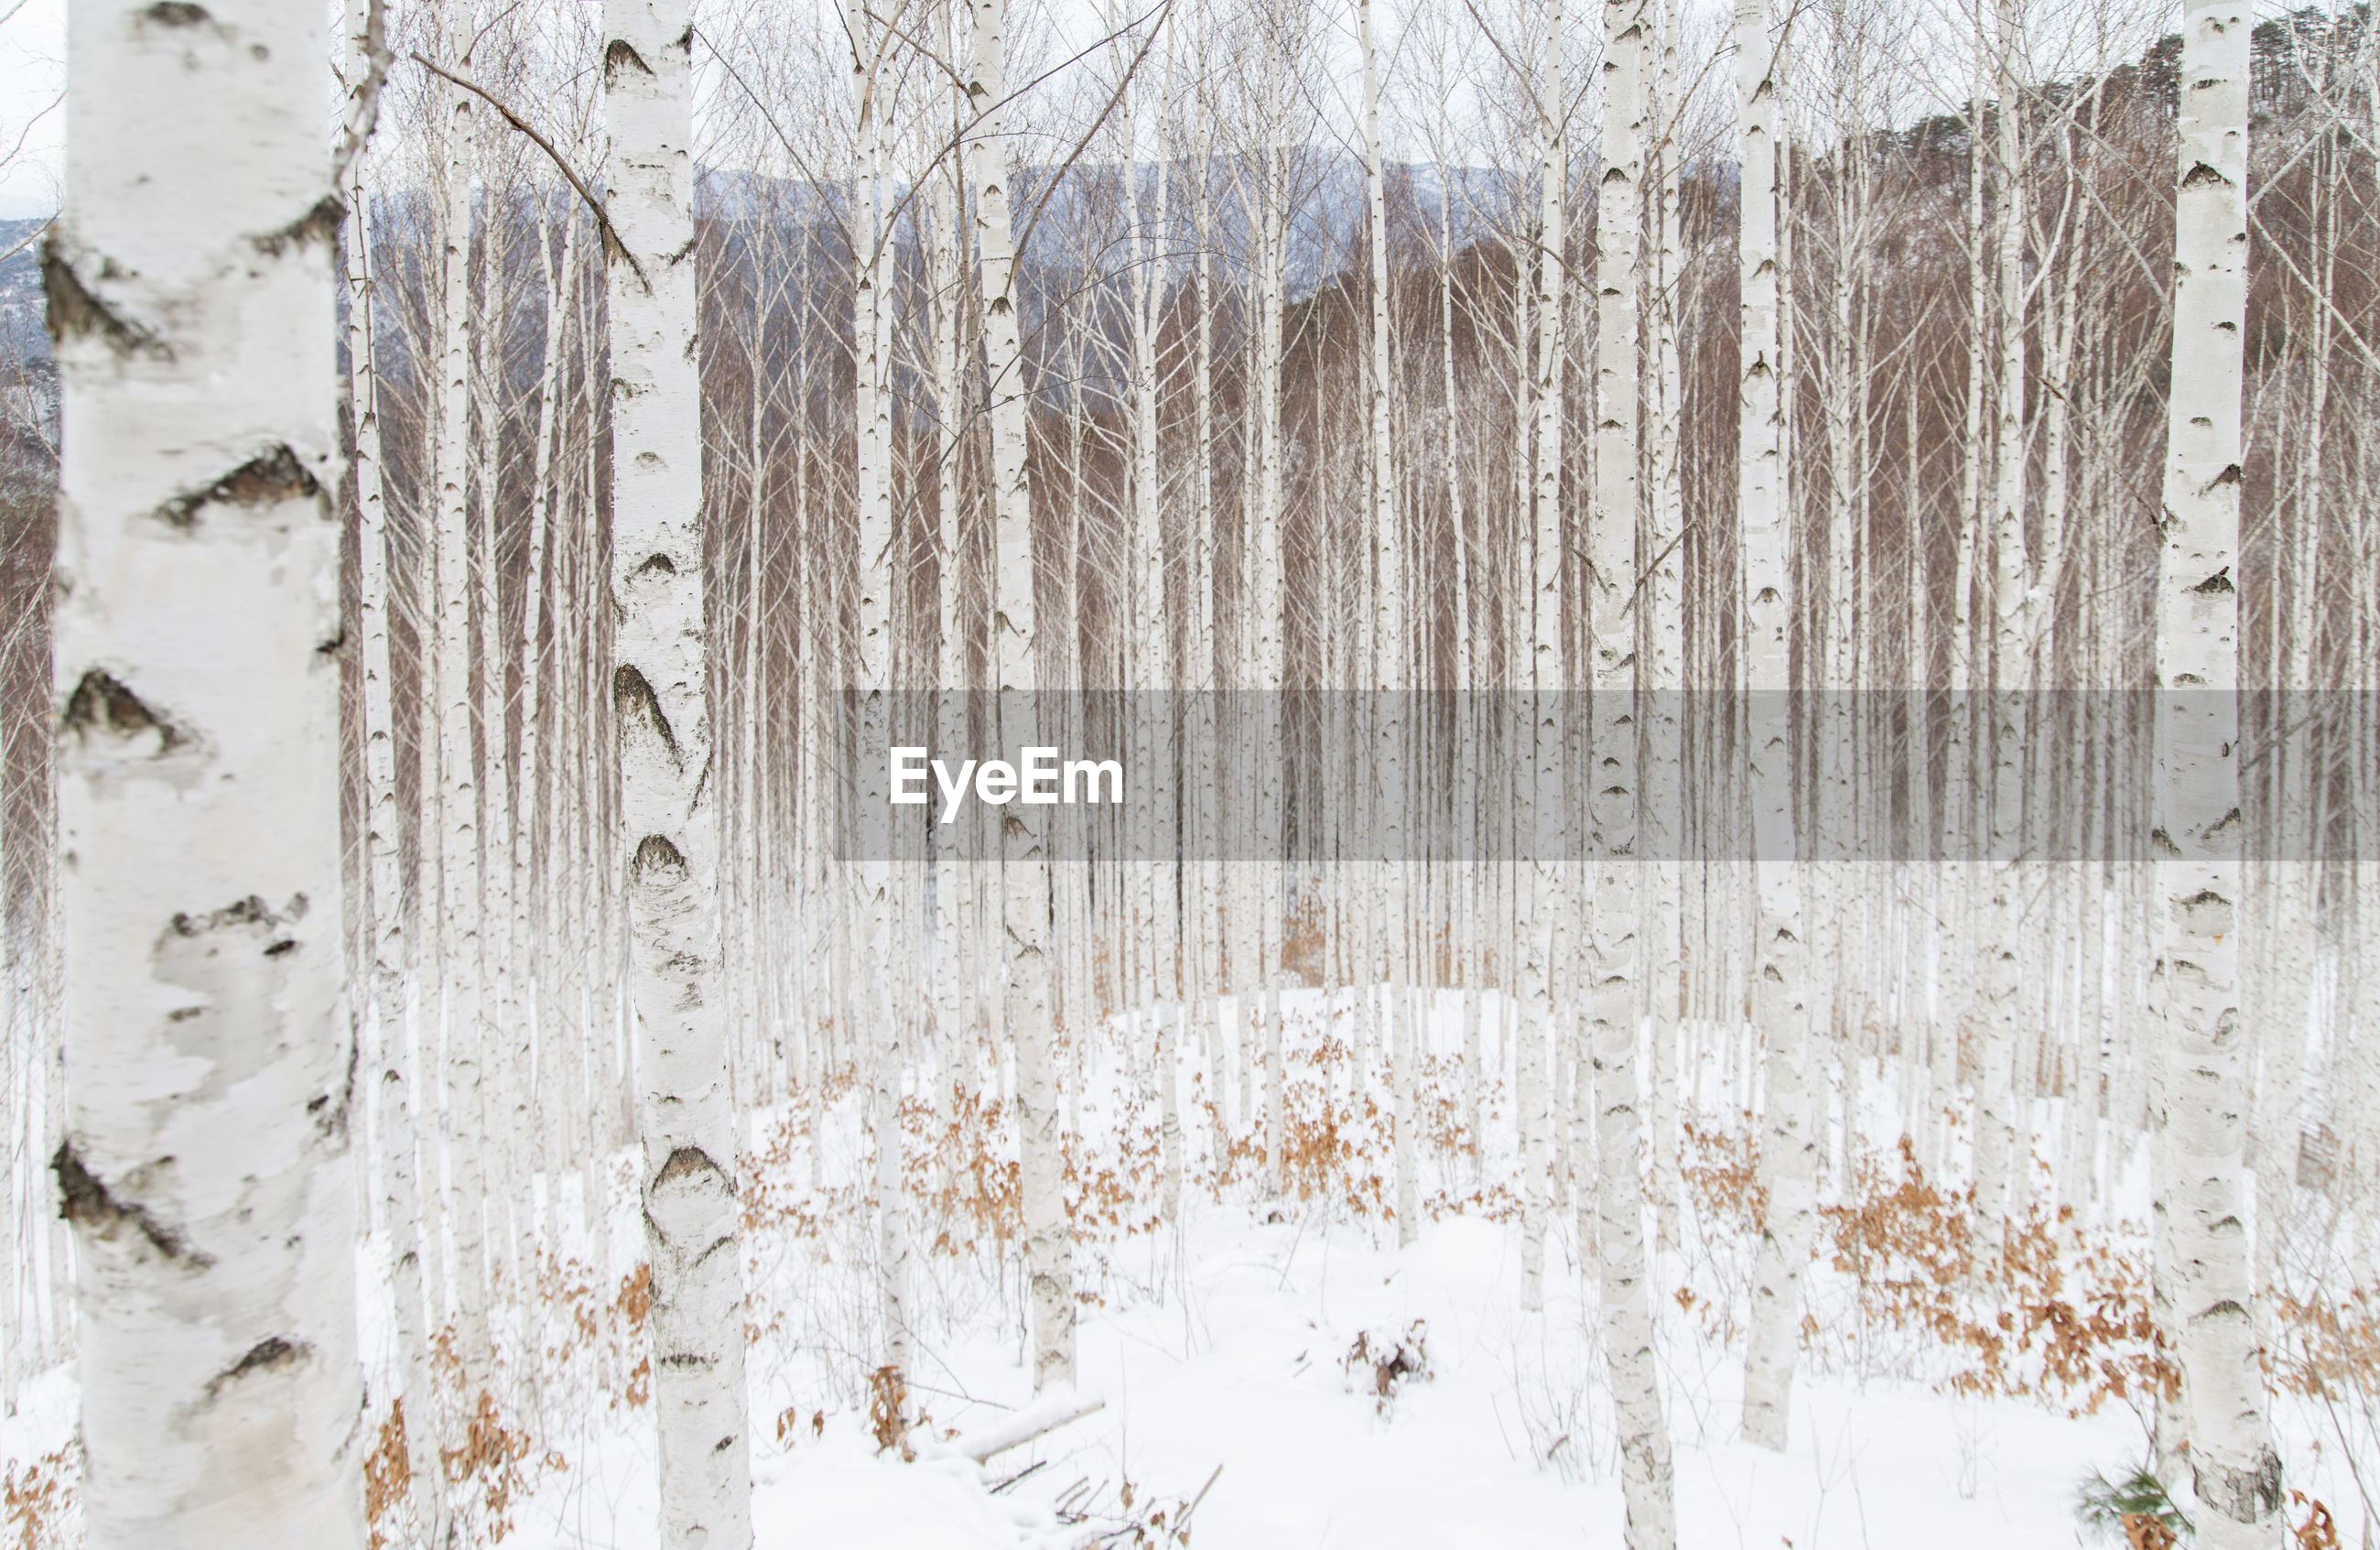 Bare trees on snow at forest